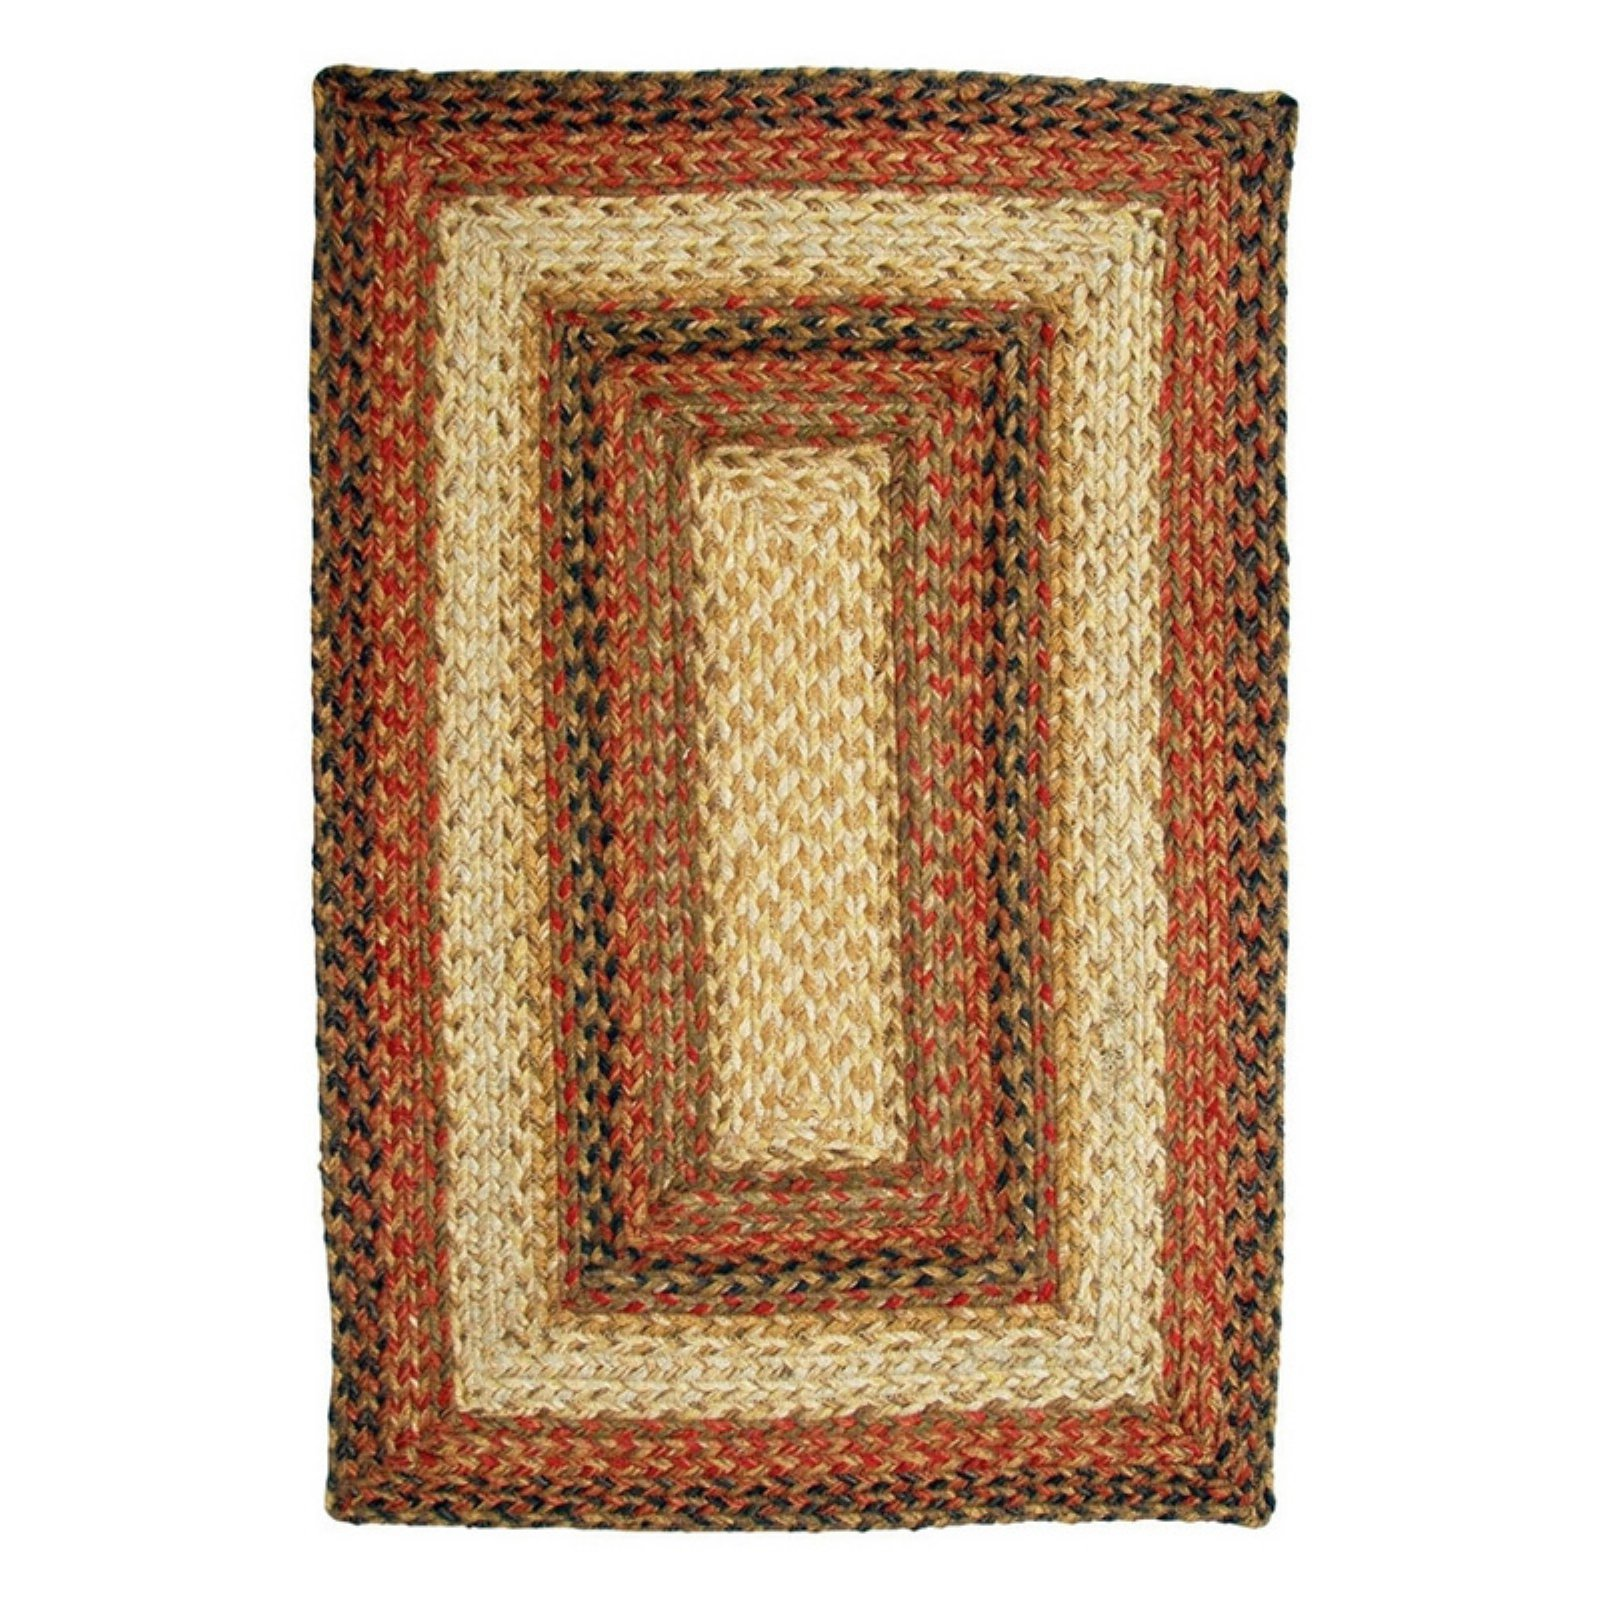 Homespice Decor Russet Braided Area Rug